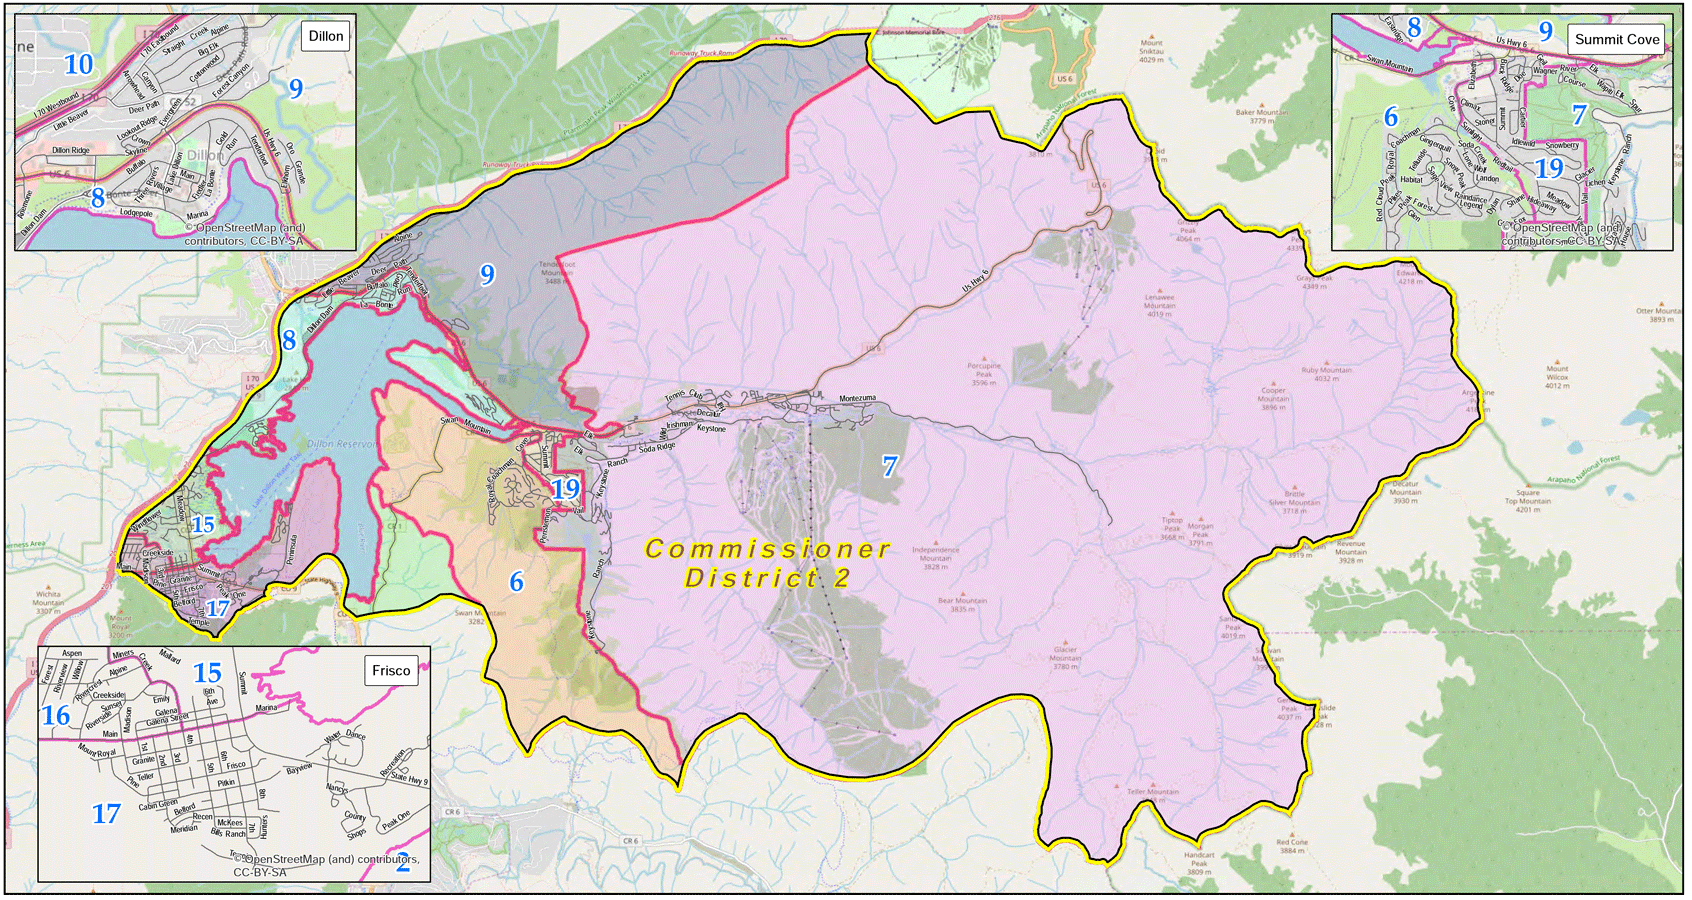 Summit County, Colorado Voting District 2 Map